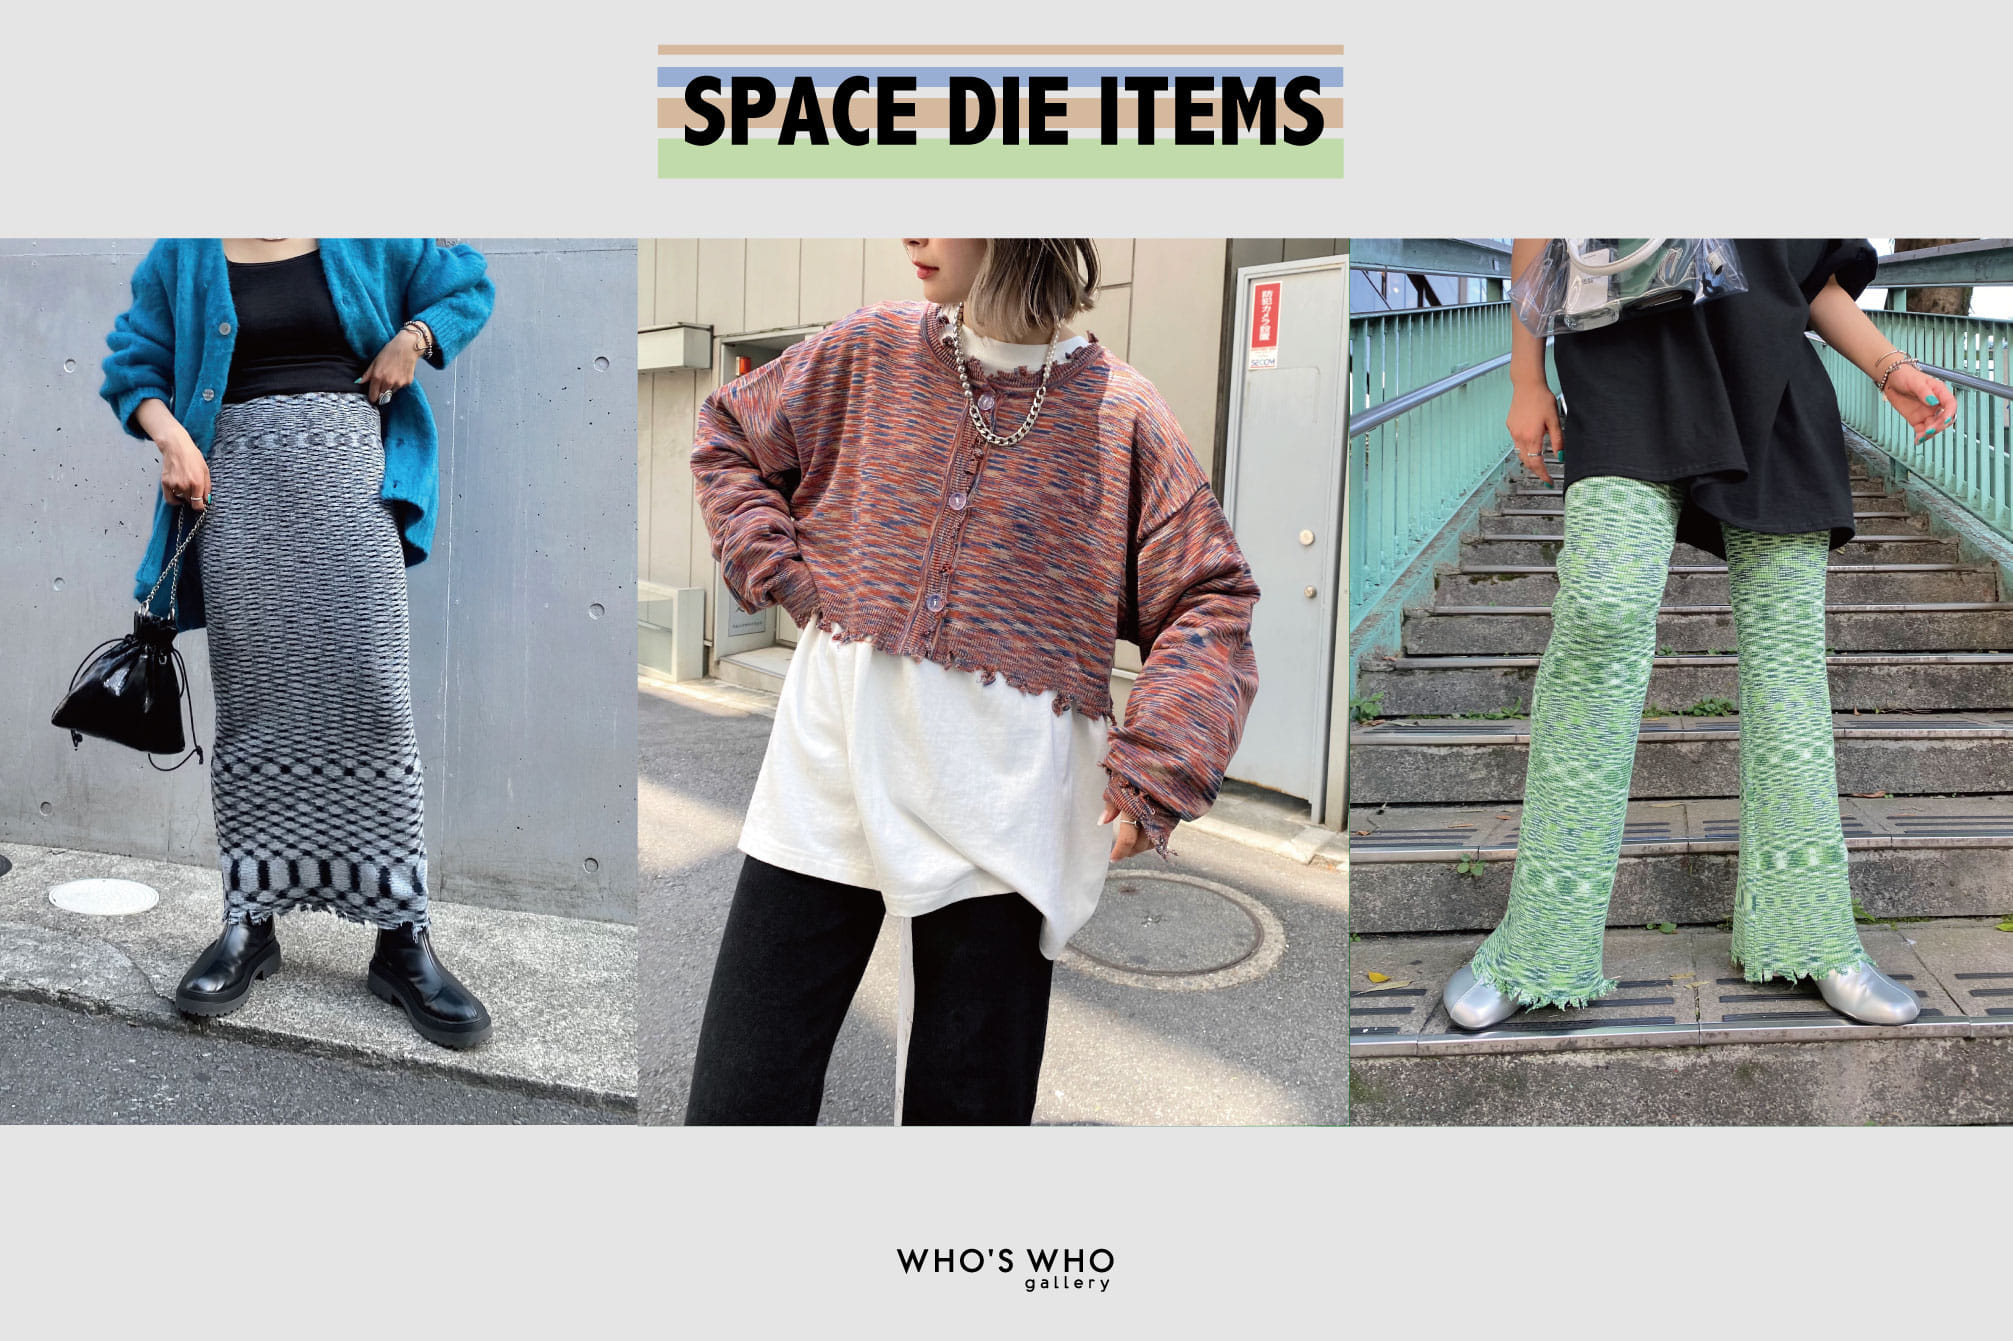 WHO'S WHO gallery 【SPACE DIE ITEMS】